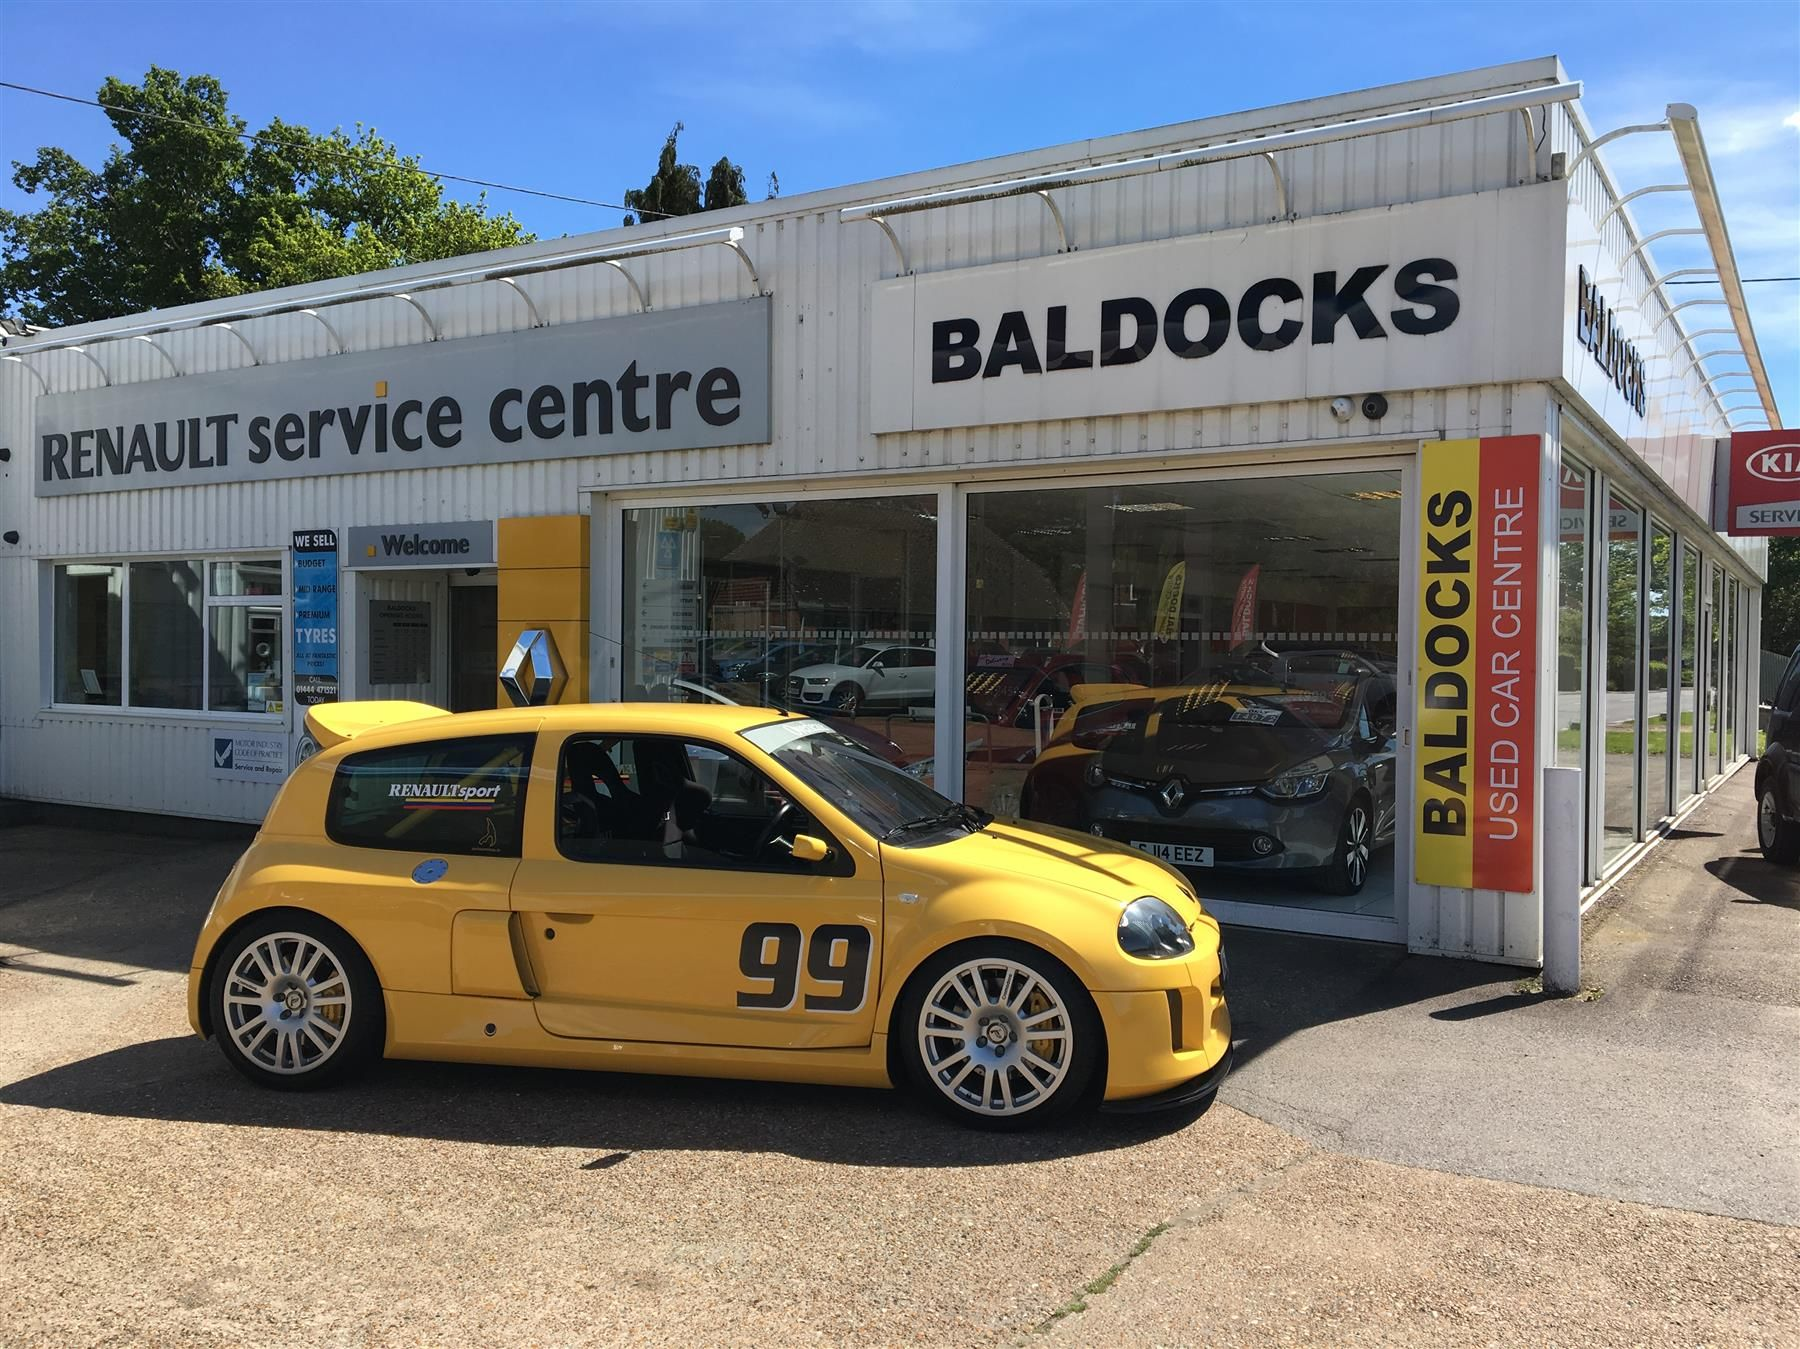 Used 2002 Renault Clio V6 Renaultsport V6 For Sale In East Sussex